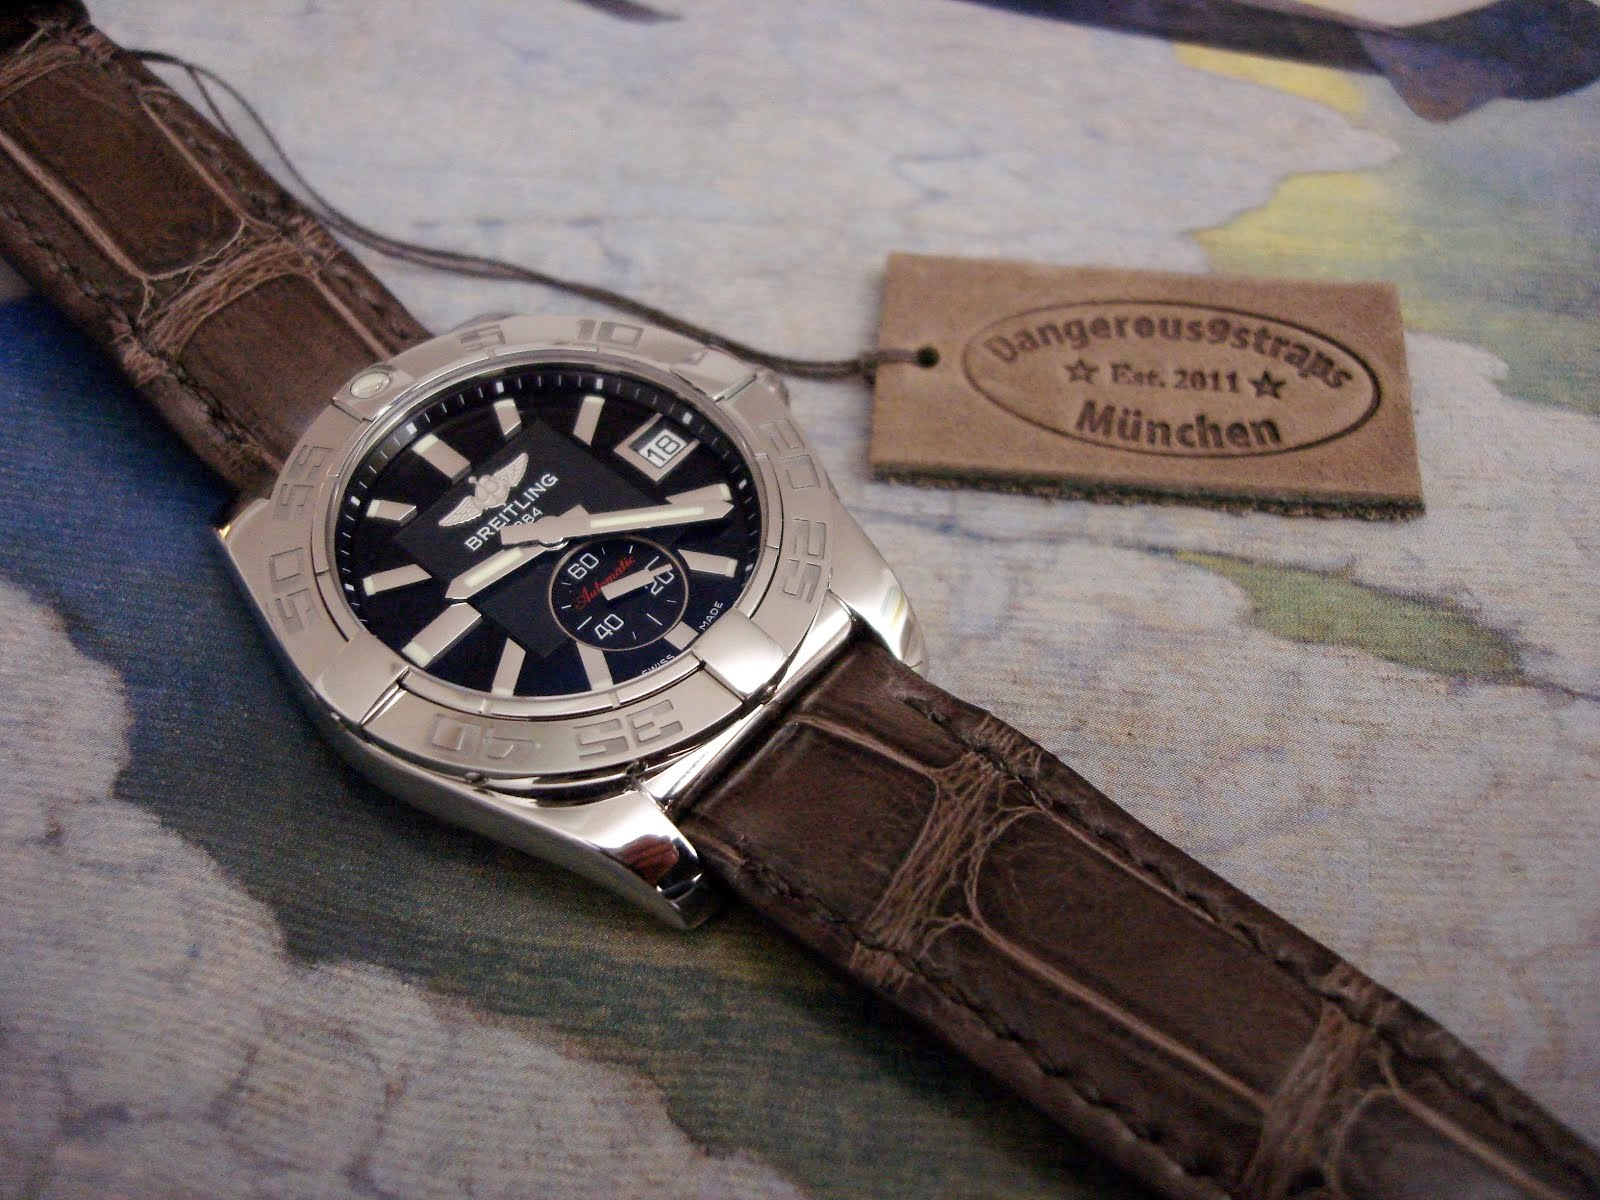 Anjelika's Breitling Galactic 38 on Turbe Brune Alligator